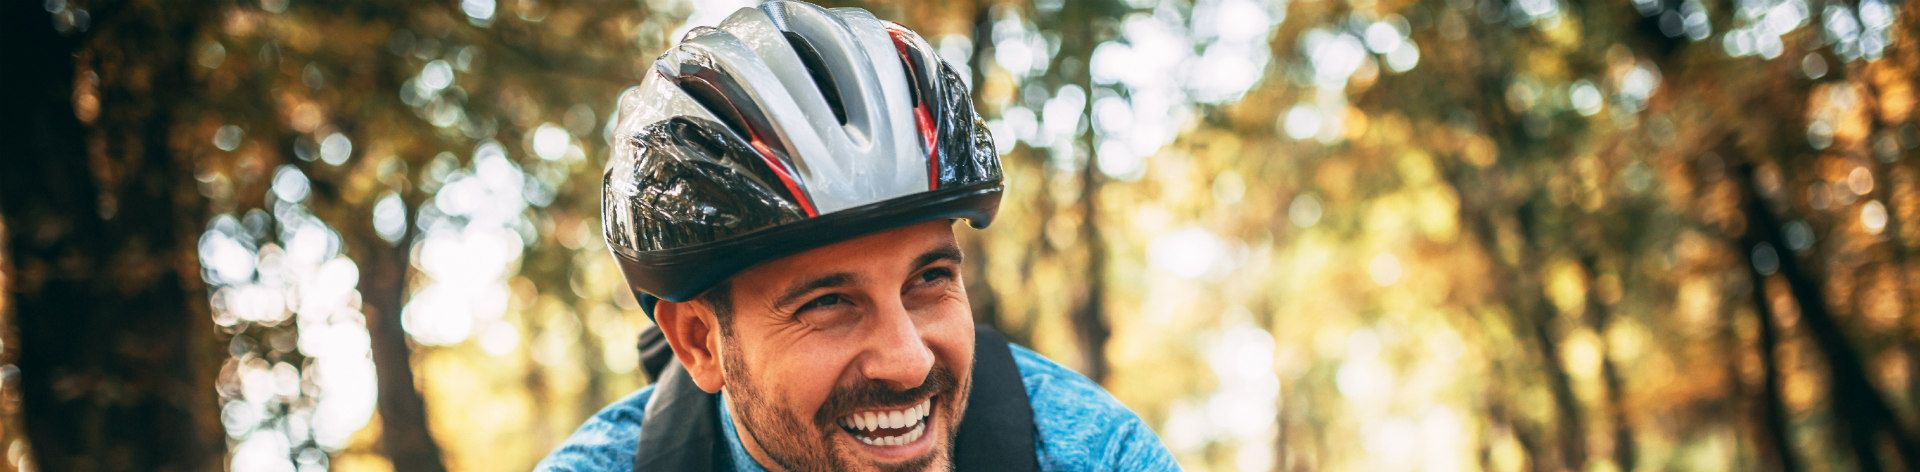 online bike helmets men